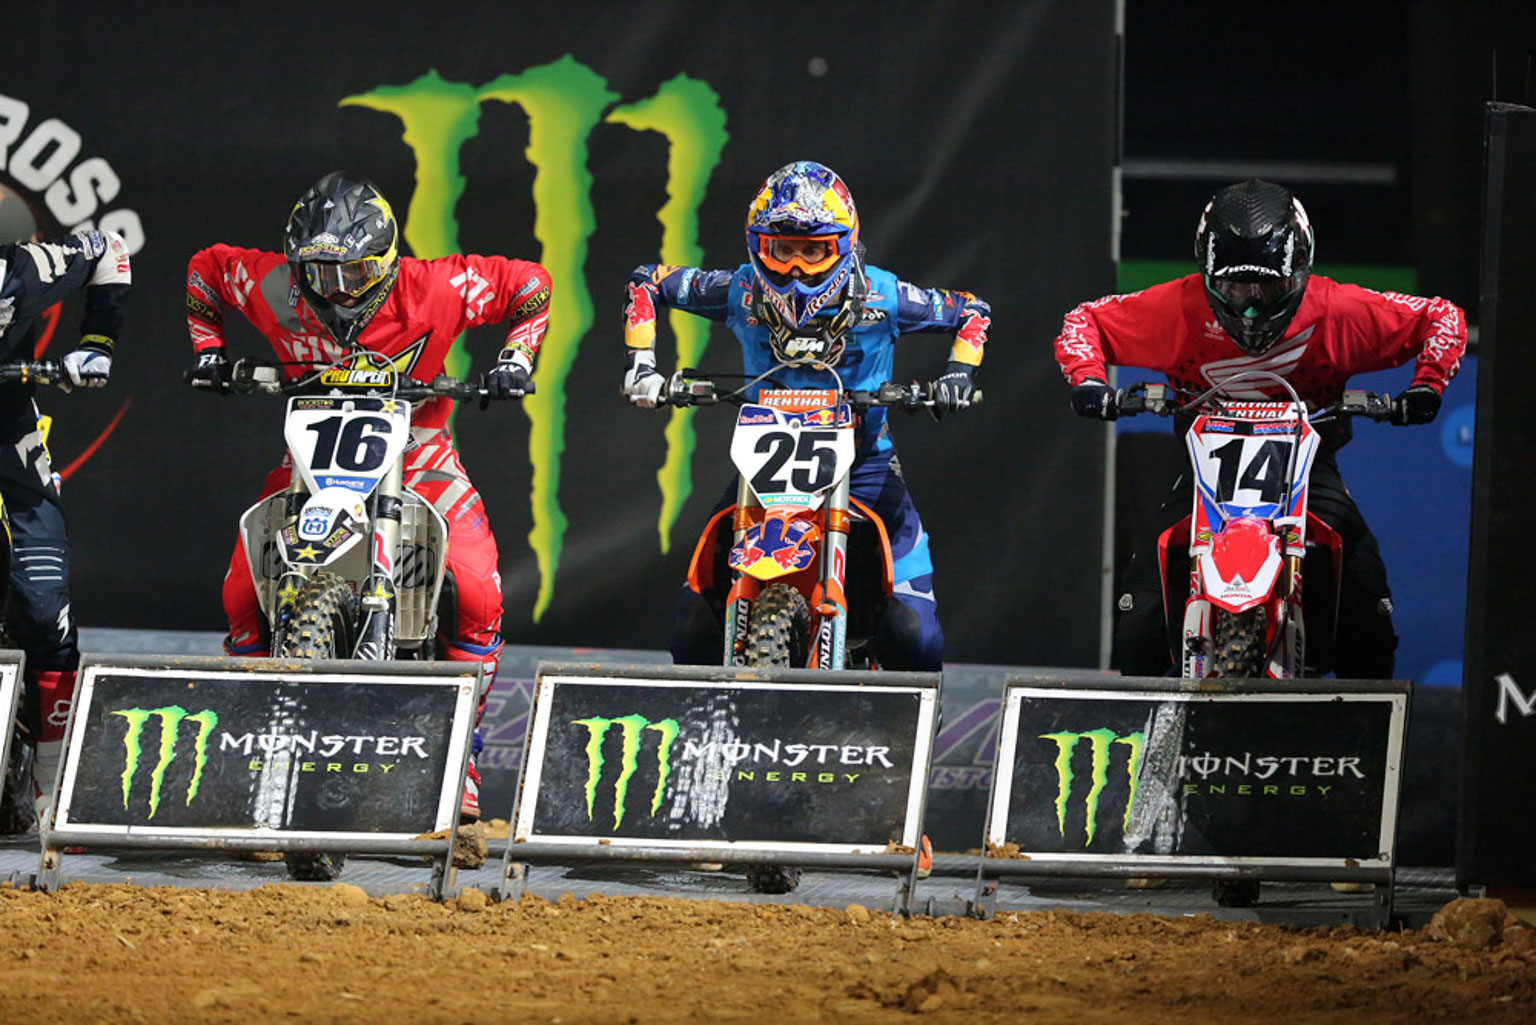 Osborne, Musquin and Seely ready for the off